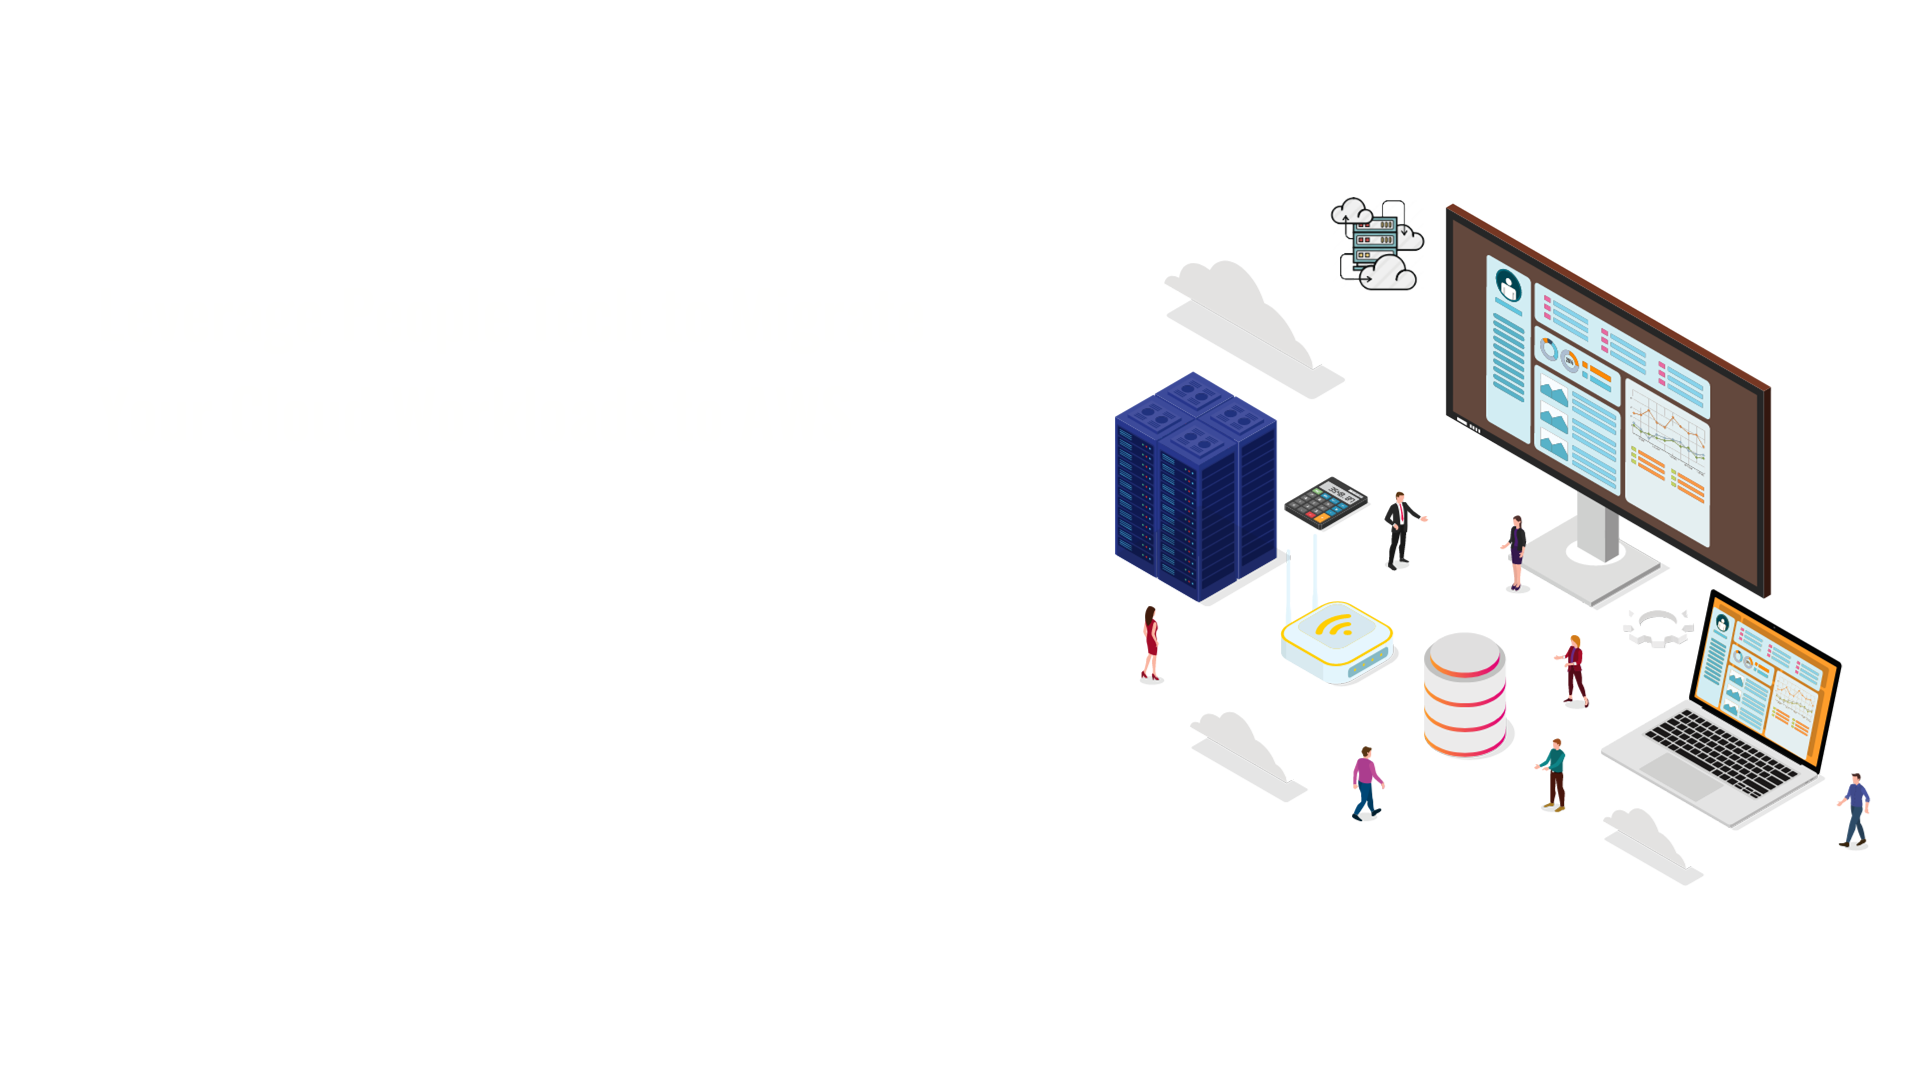 AWS banner image with text